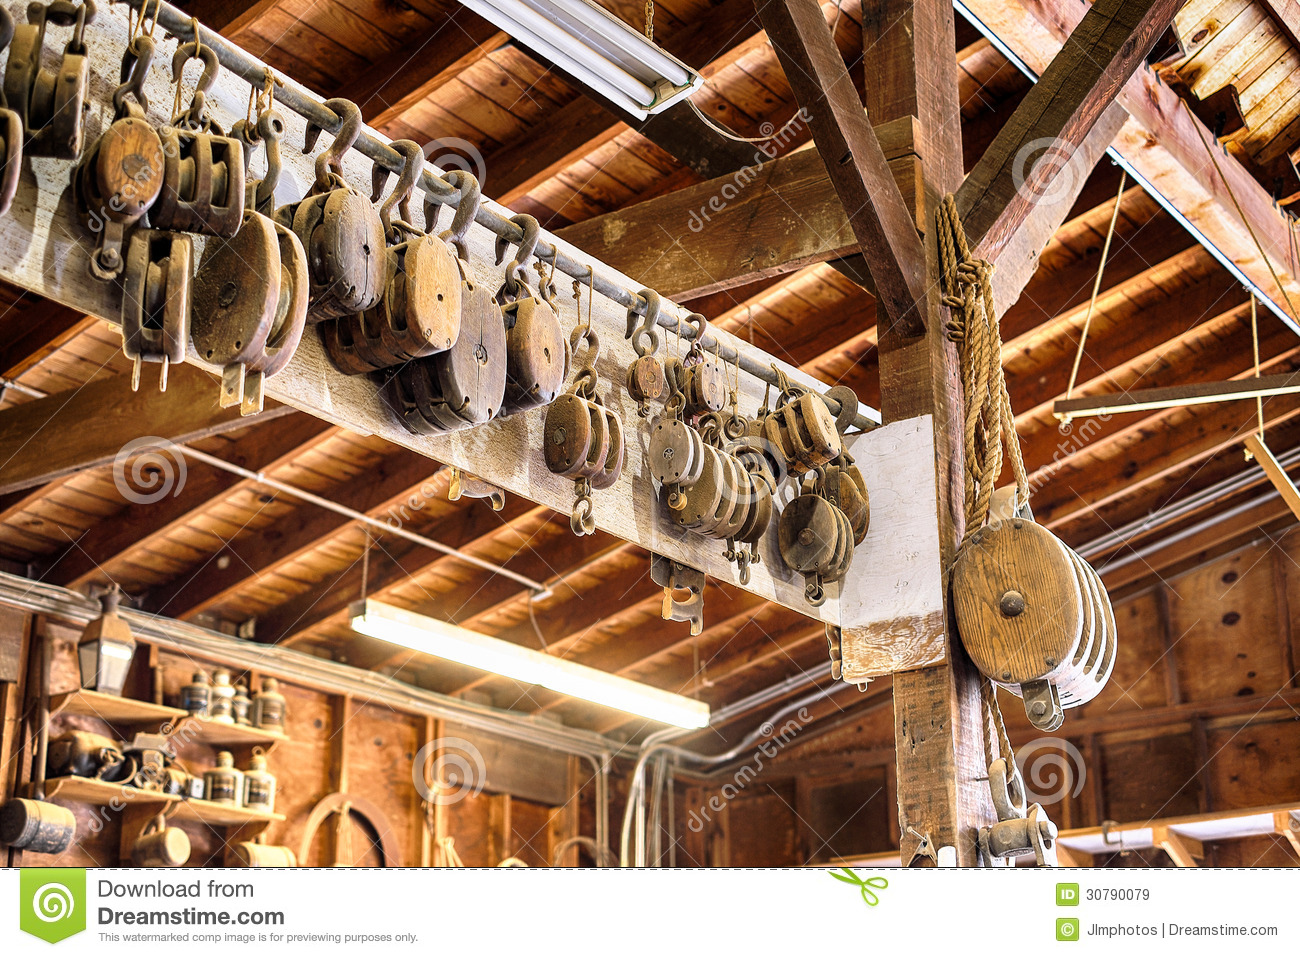 Old Wooden Block And Tackle Pulleys In A Boat Builders Shop Stock Image - Image: 30790079